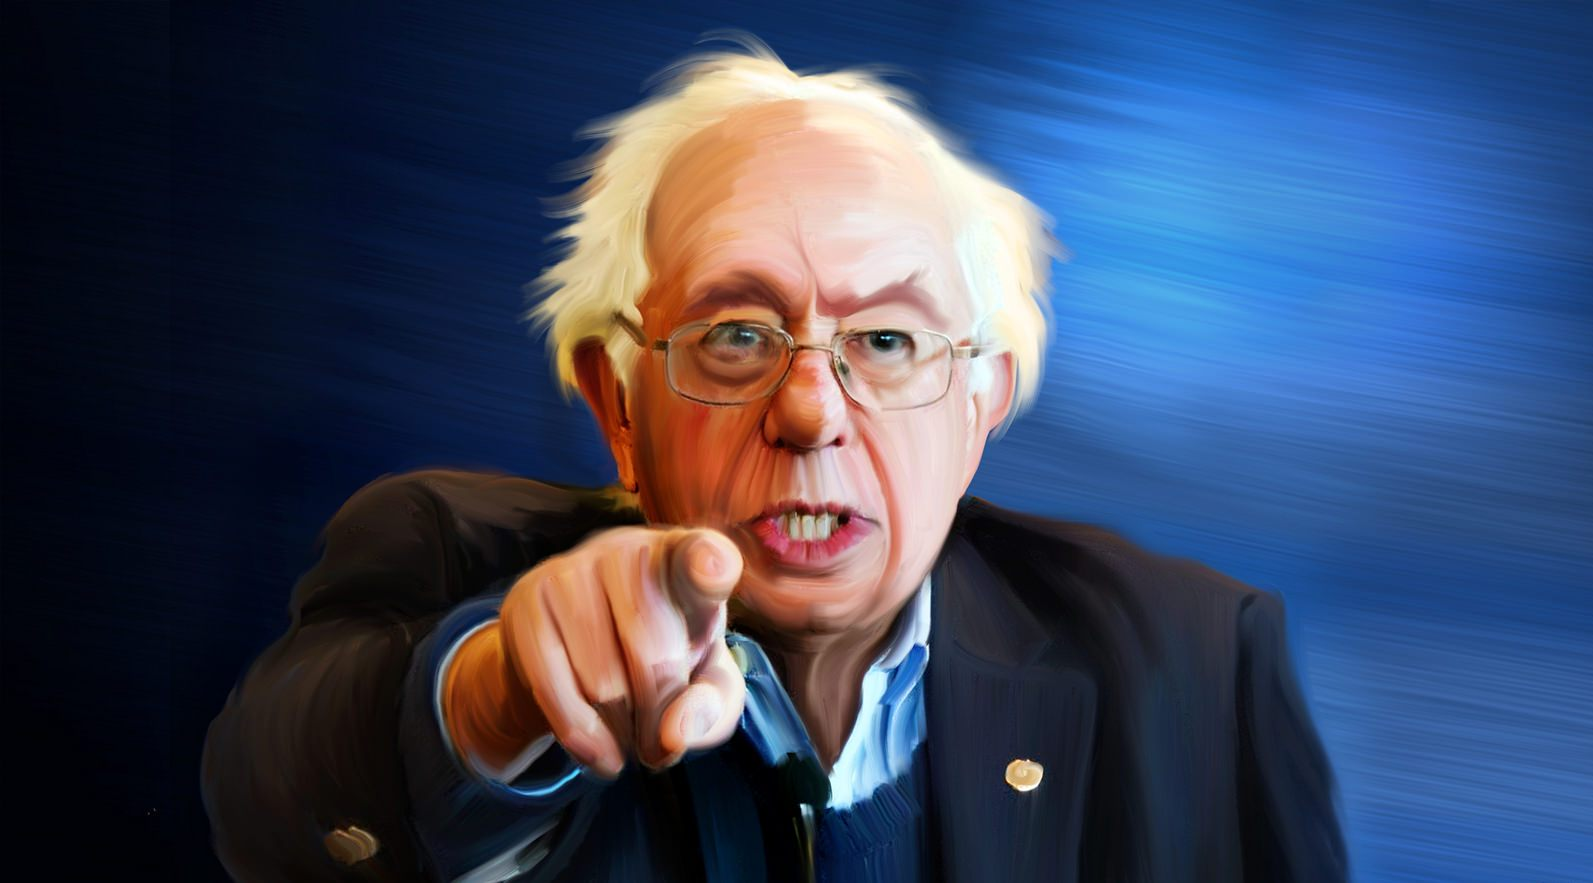 bernie sanders face cutout. if bernie sanders is real, he will run as an independent face cutout